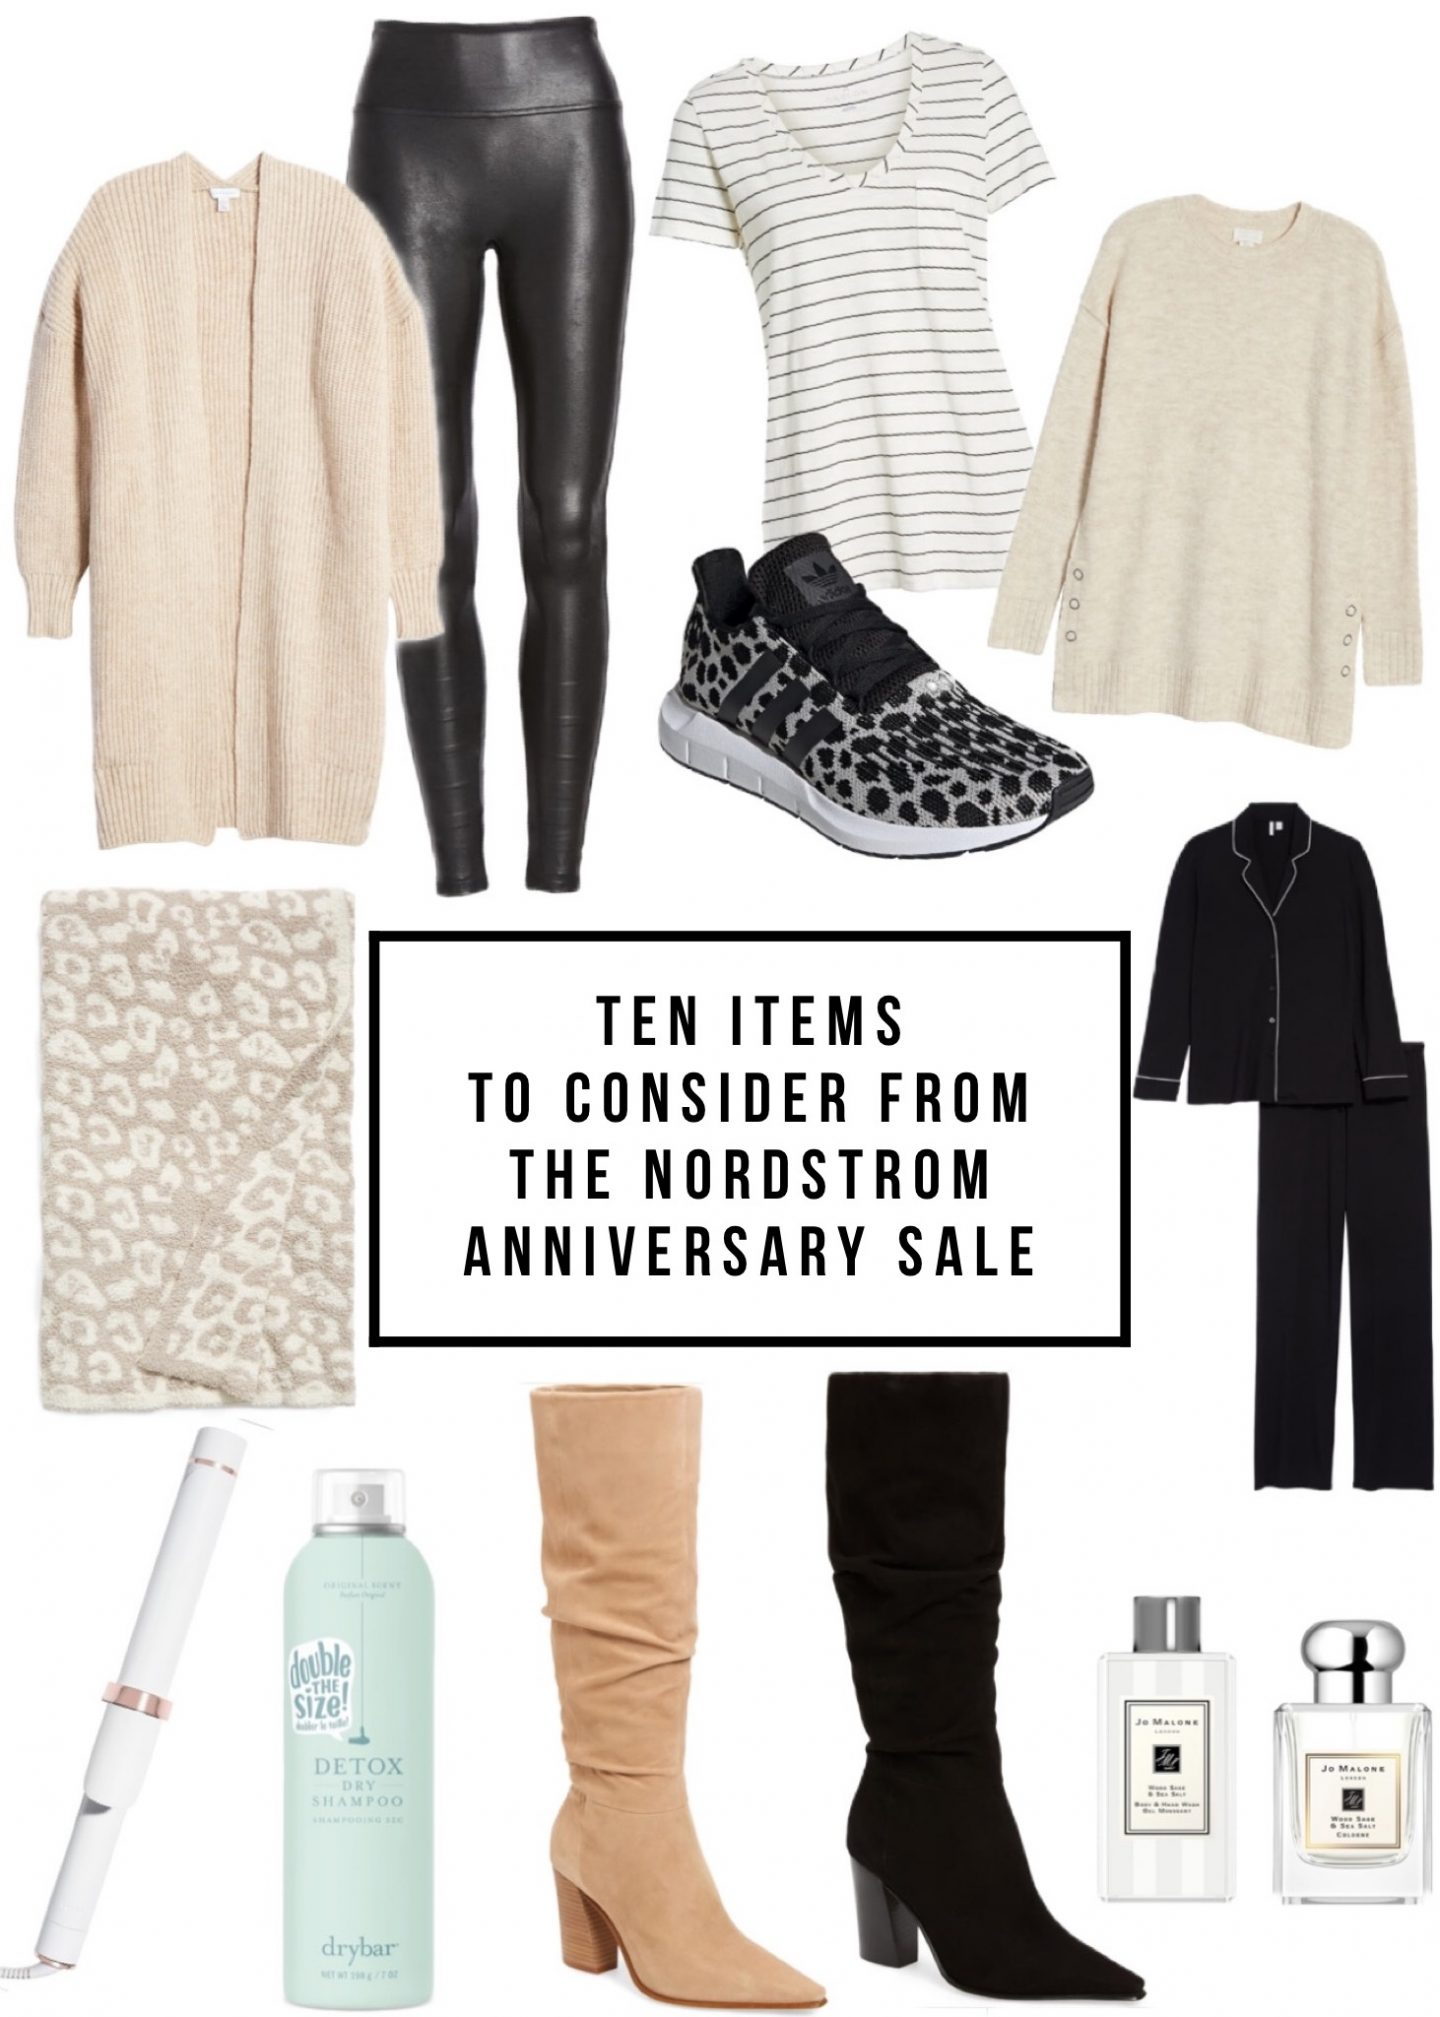 Ten Items To Consider From The Nordstrom Anniversary Sale 2020